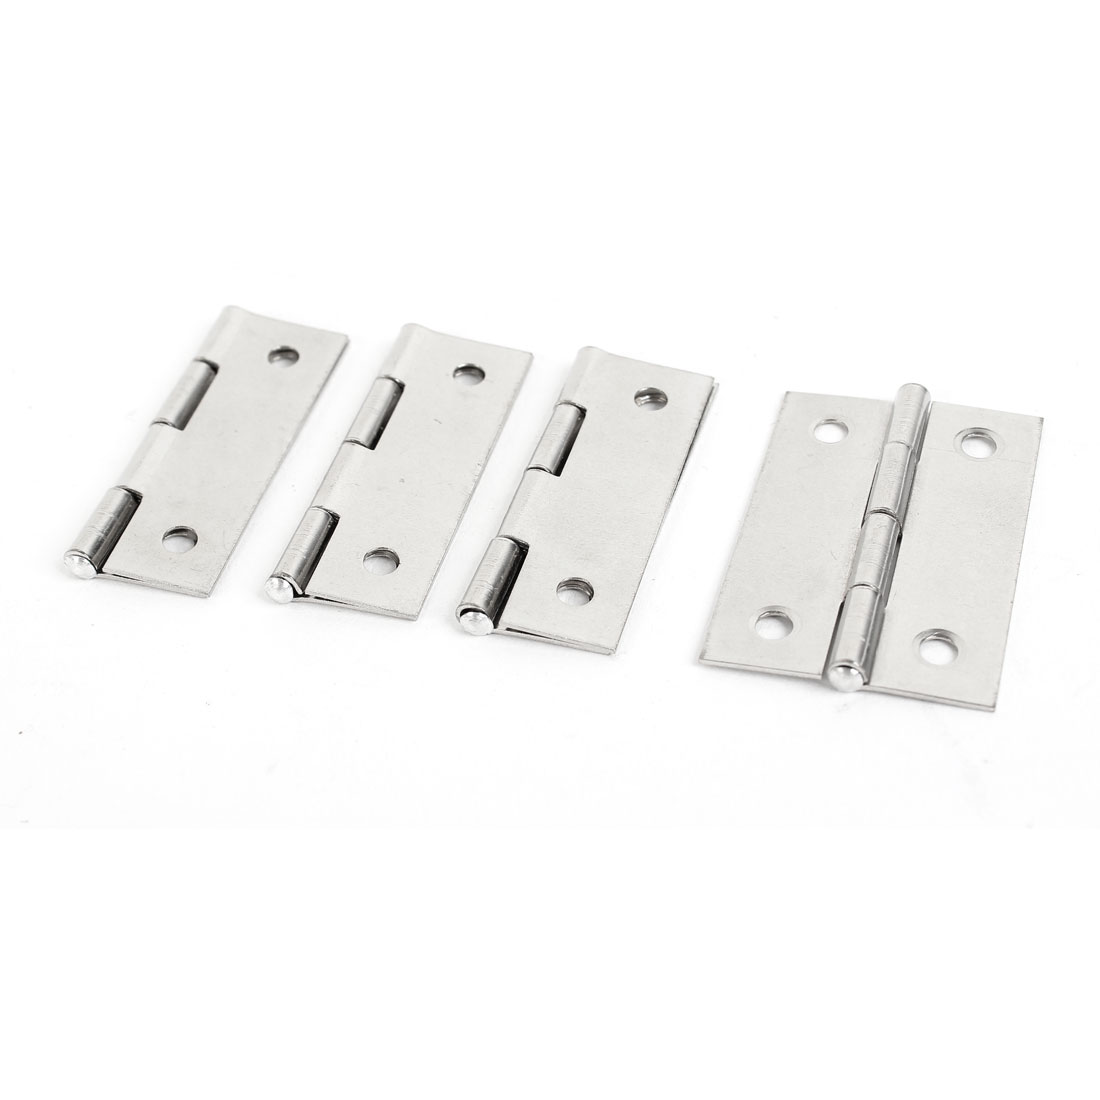 "1.8"" x 1.3"" Rectangle Folding Furniture Cupboard Closet Door Butt Hinge 4 Pcs"